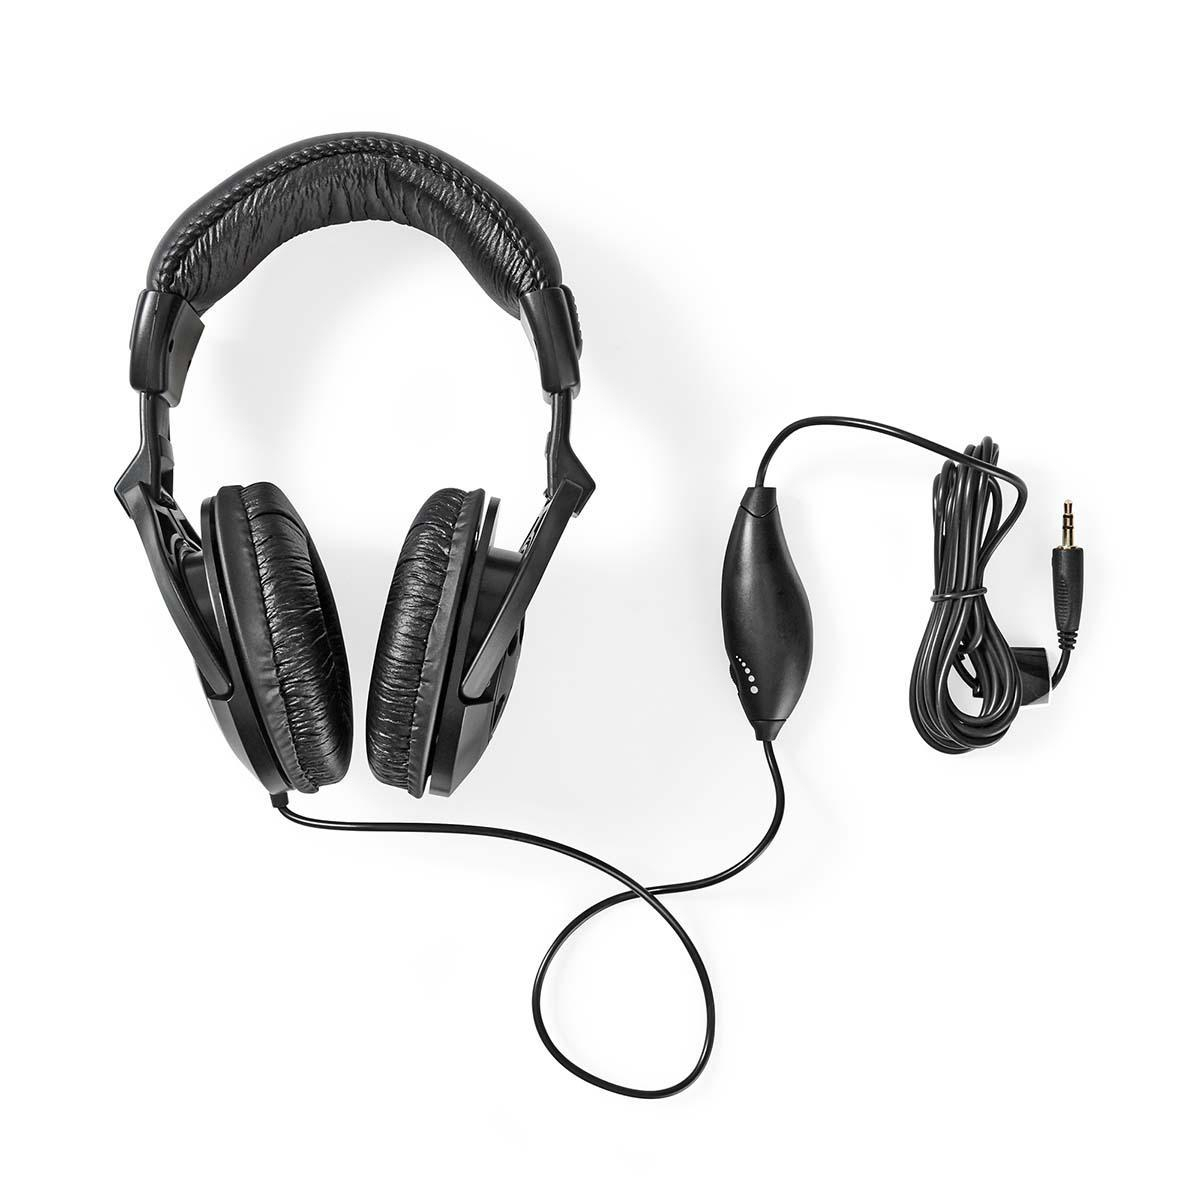 Nedis Over-Ear Headphones with swivl ear pads Black